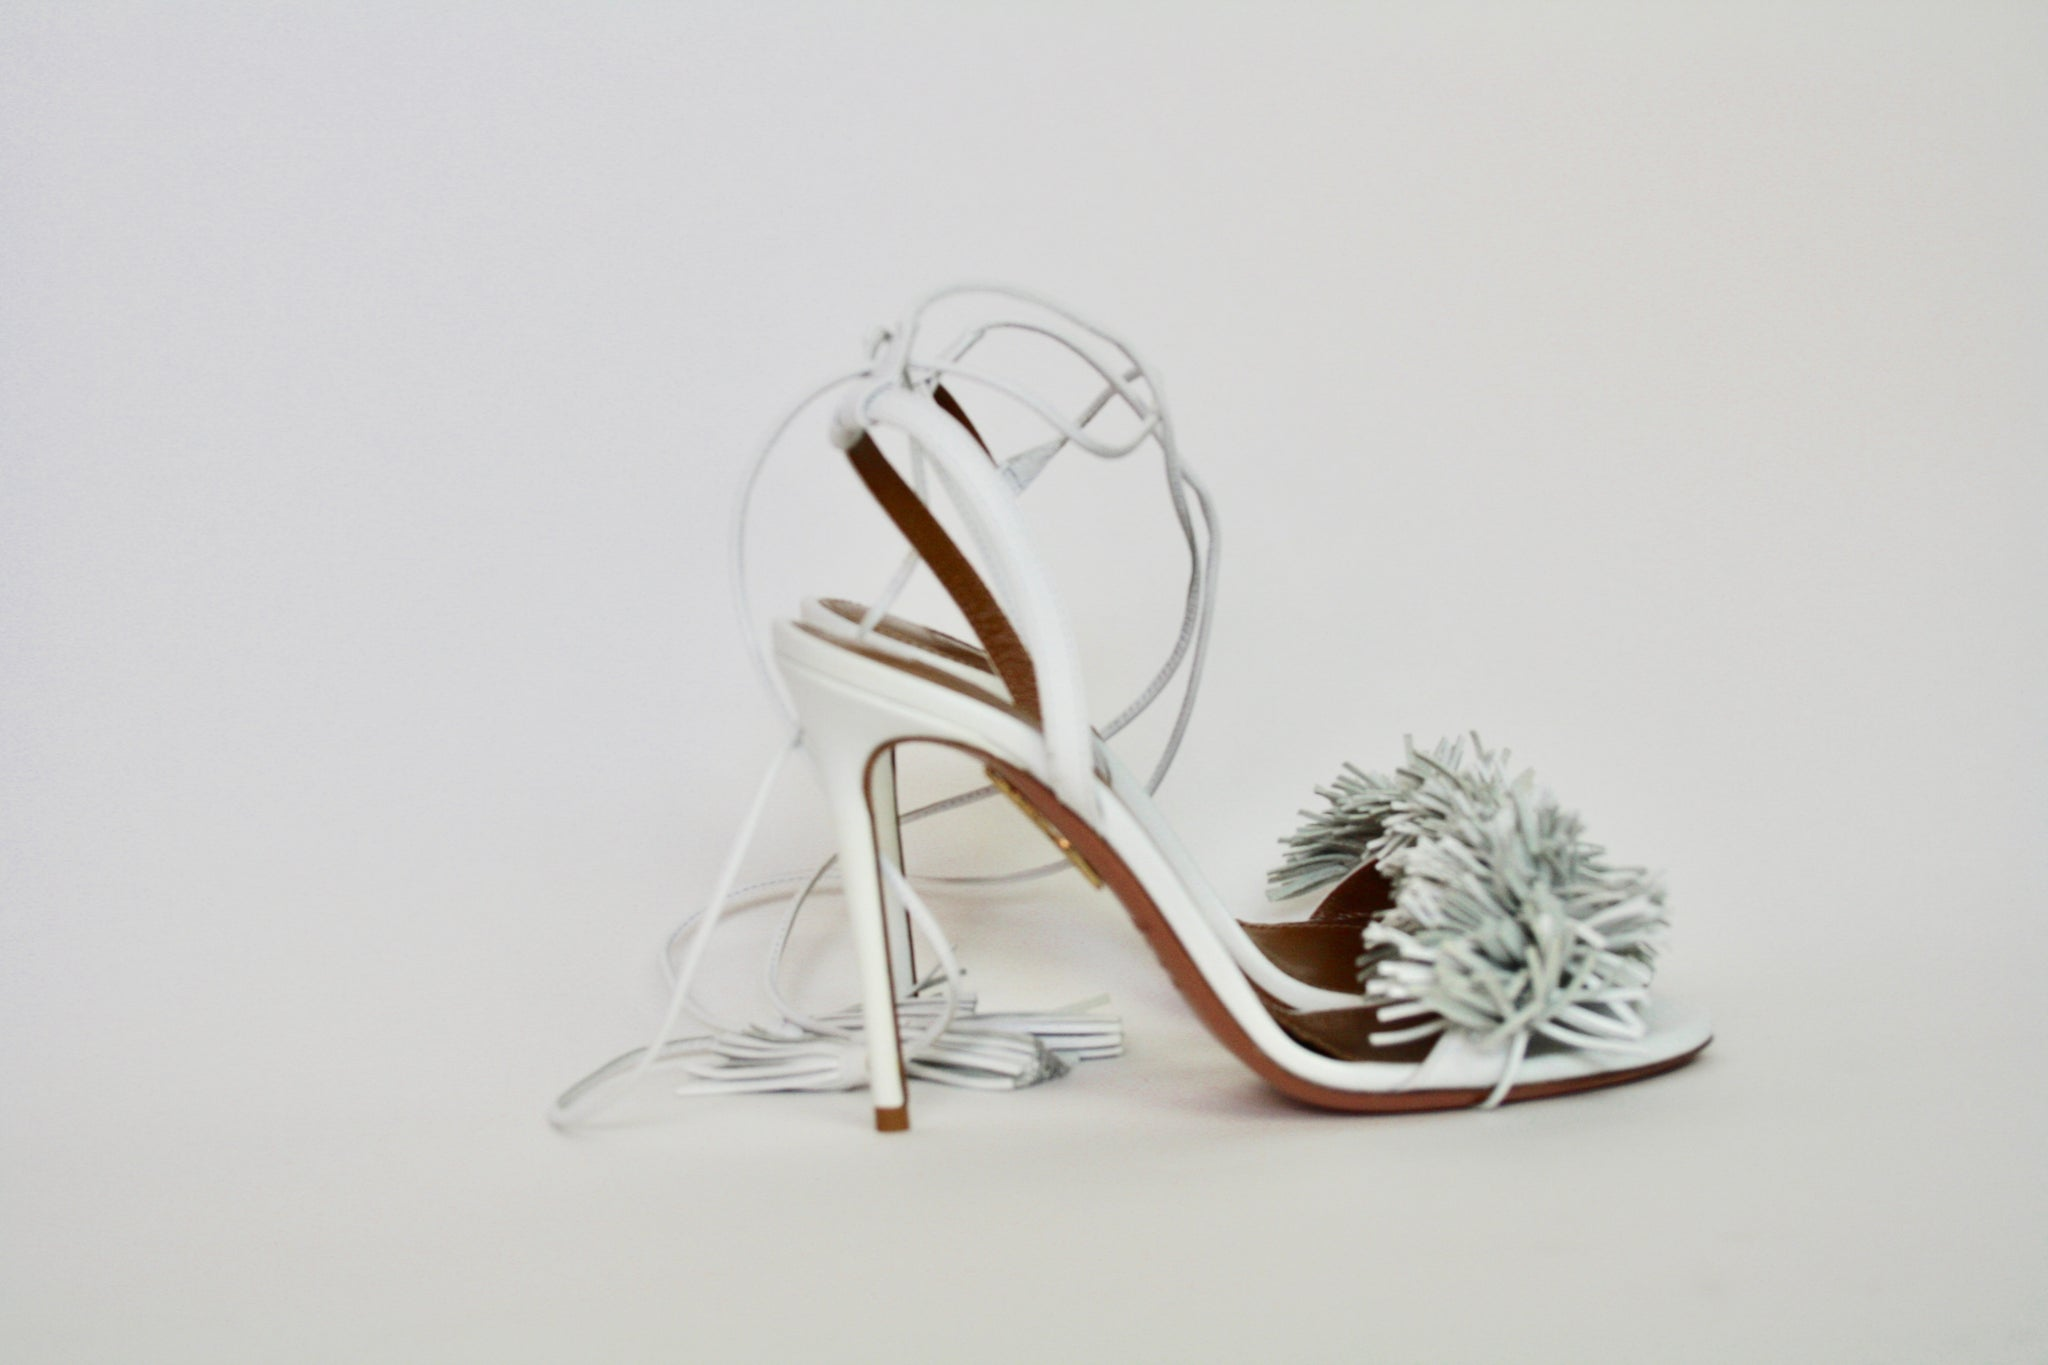 Aquazzura Wild Thing 105, 36 - Iconics Preloved Luxury